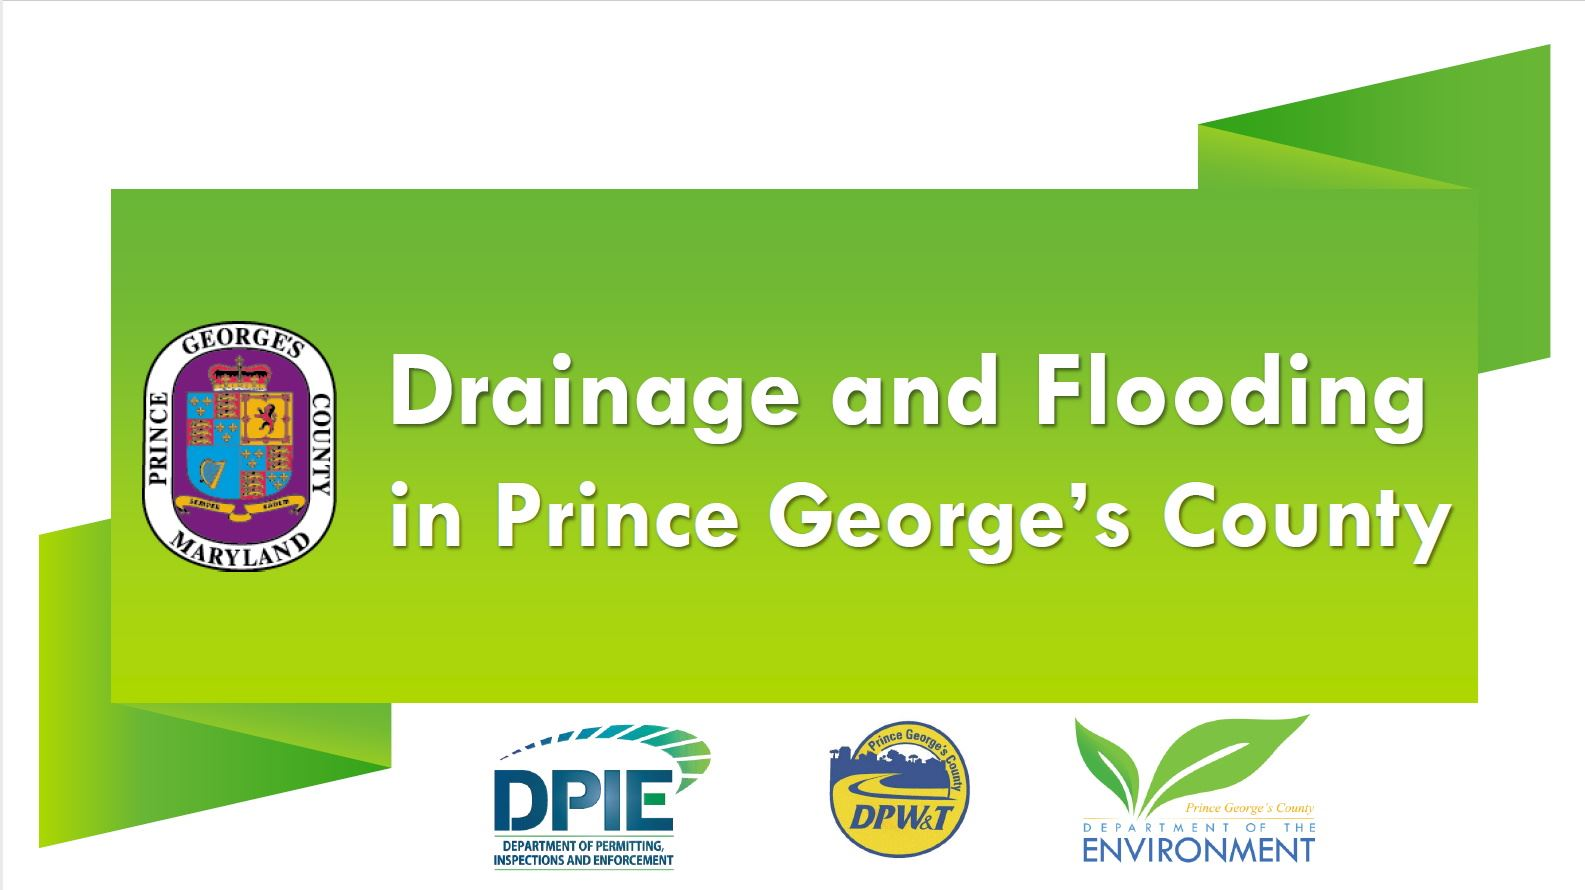 Drainage and Flooding